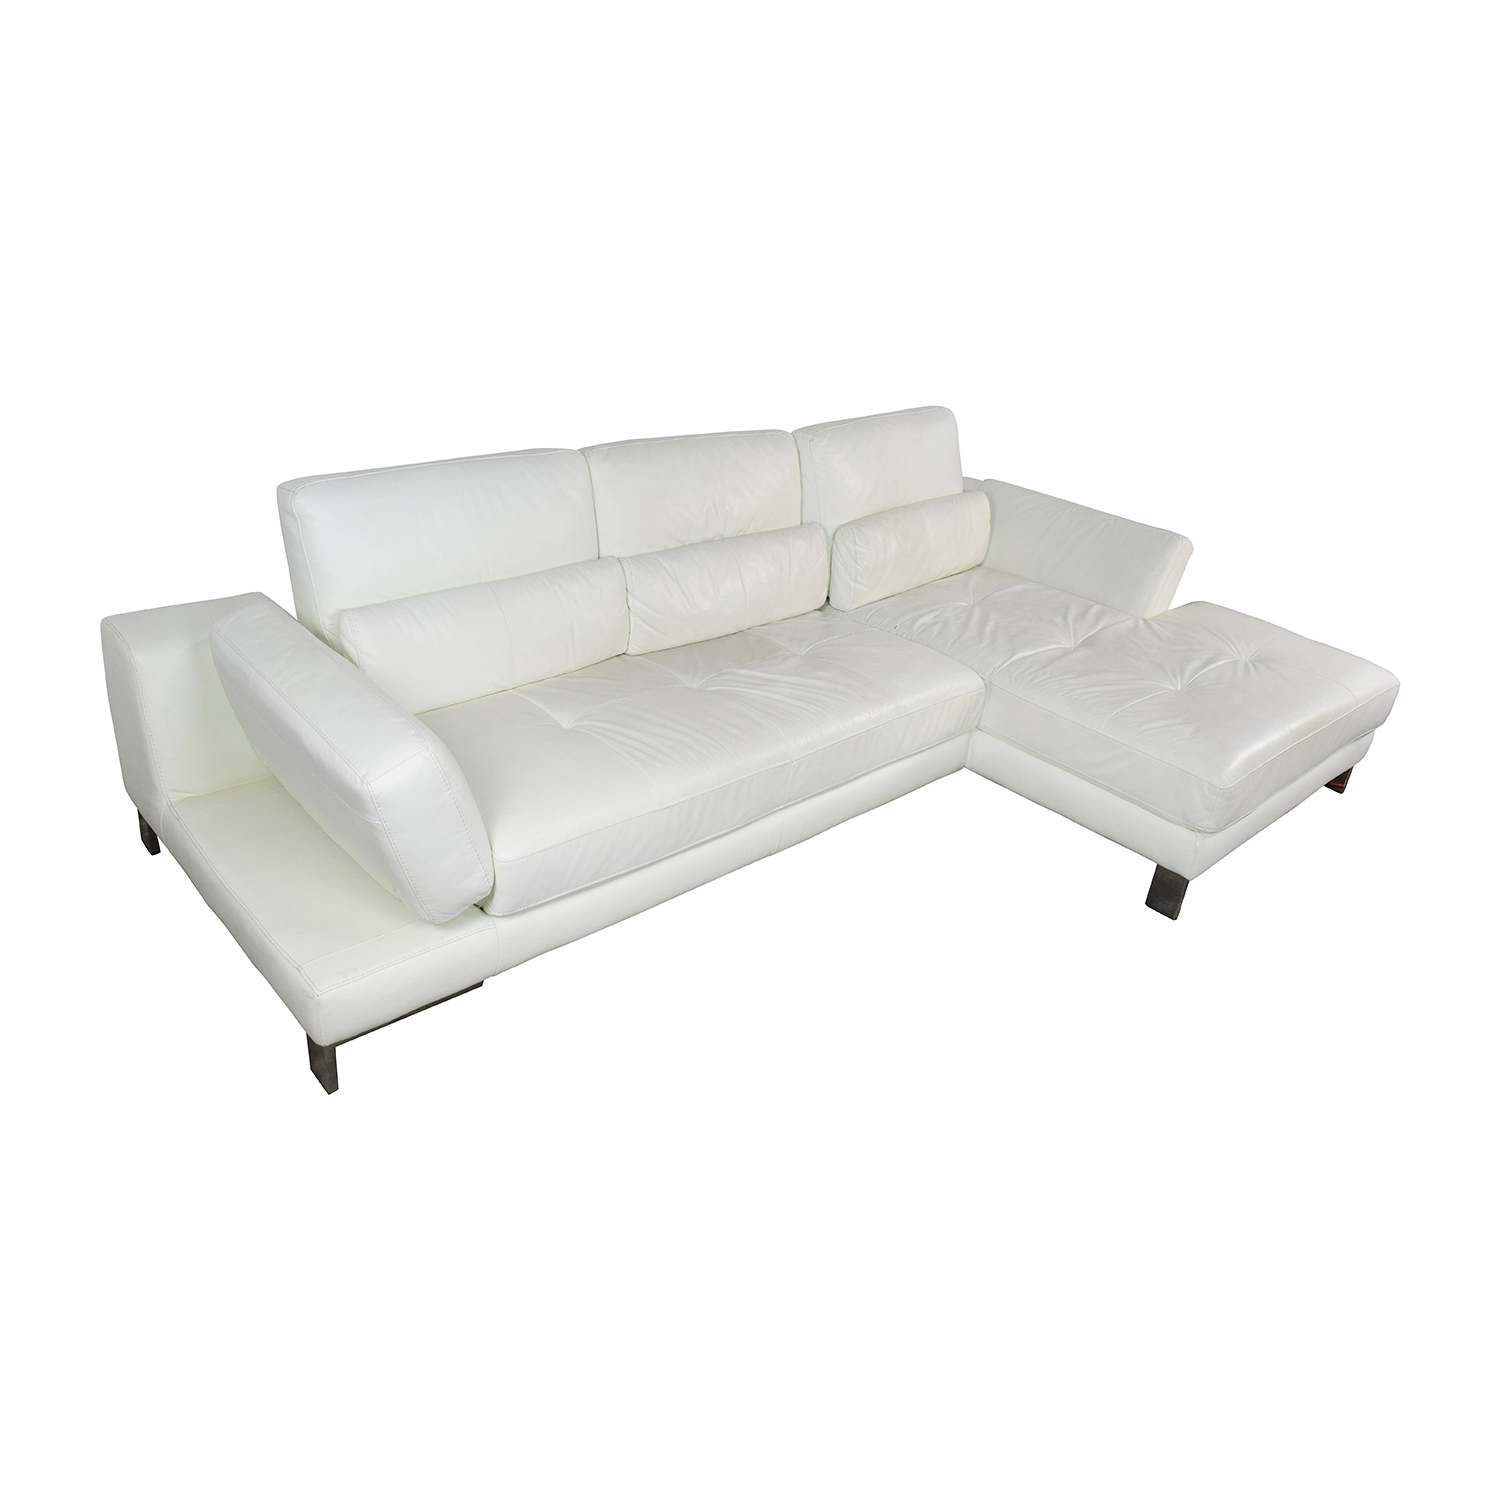 72% Off - Mobilia Canada Mobilia Canada Funktion White Leather regarding Mobilia Sectional Sofas (Image 2 of 10)